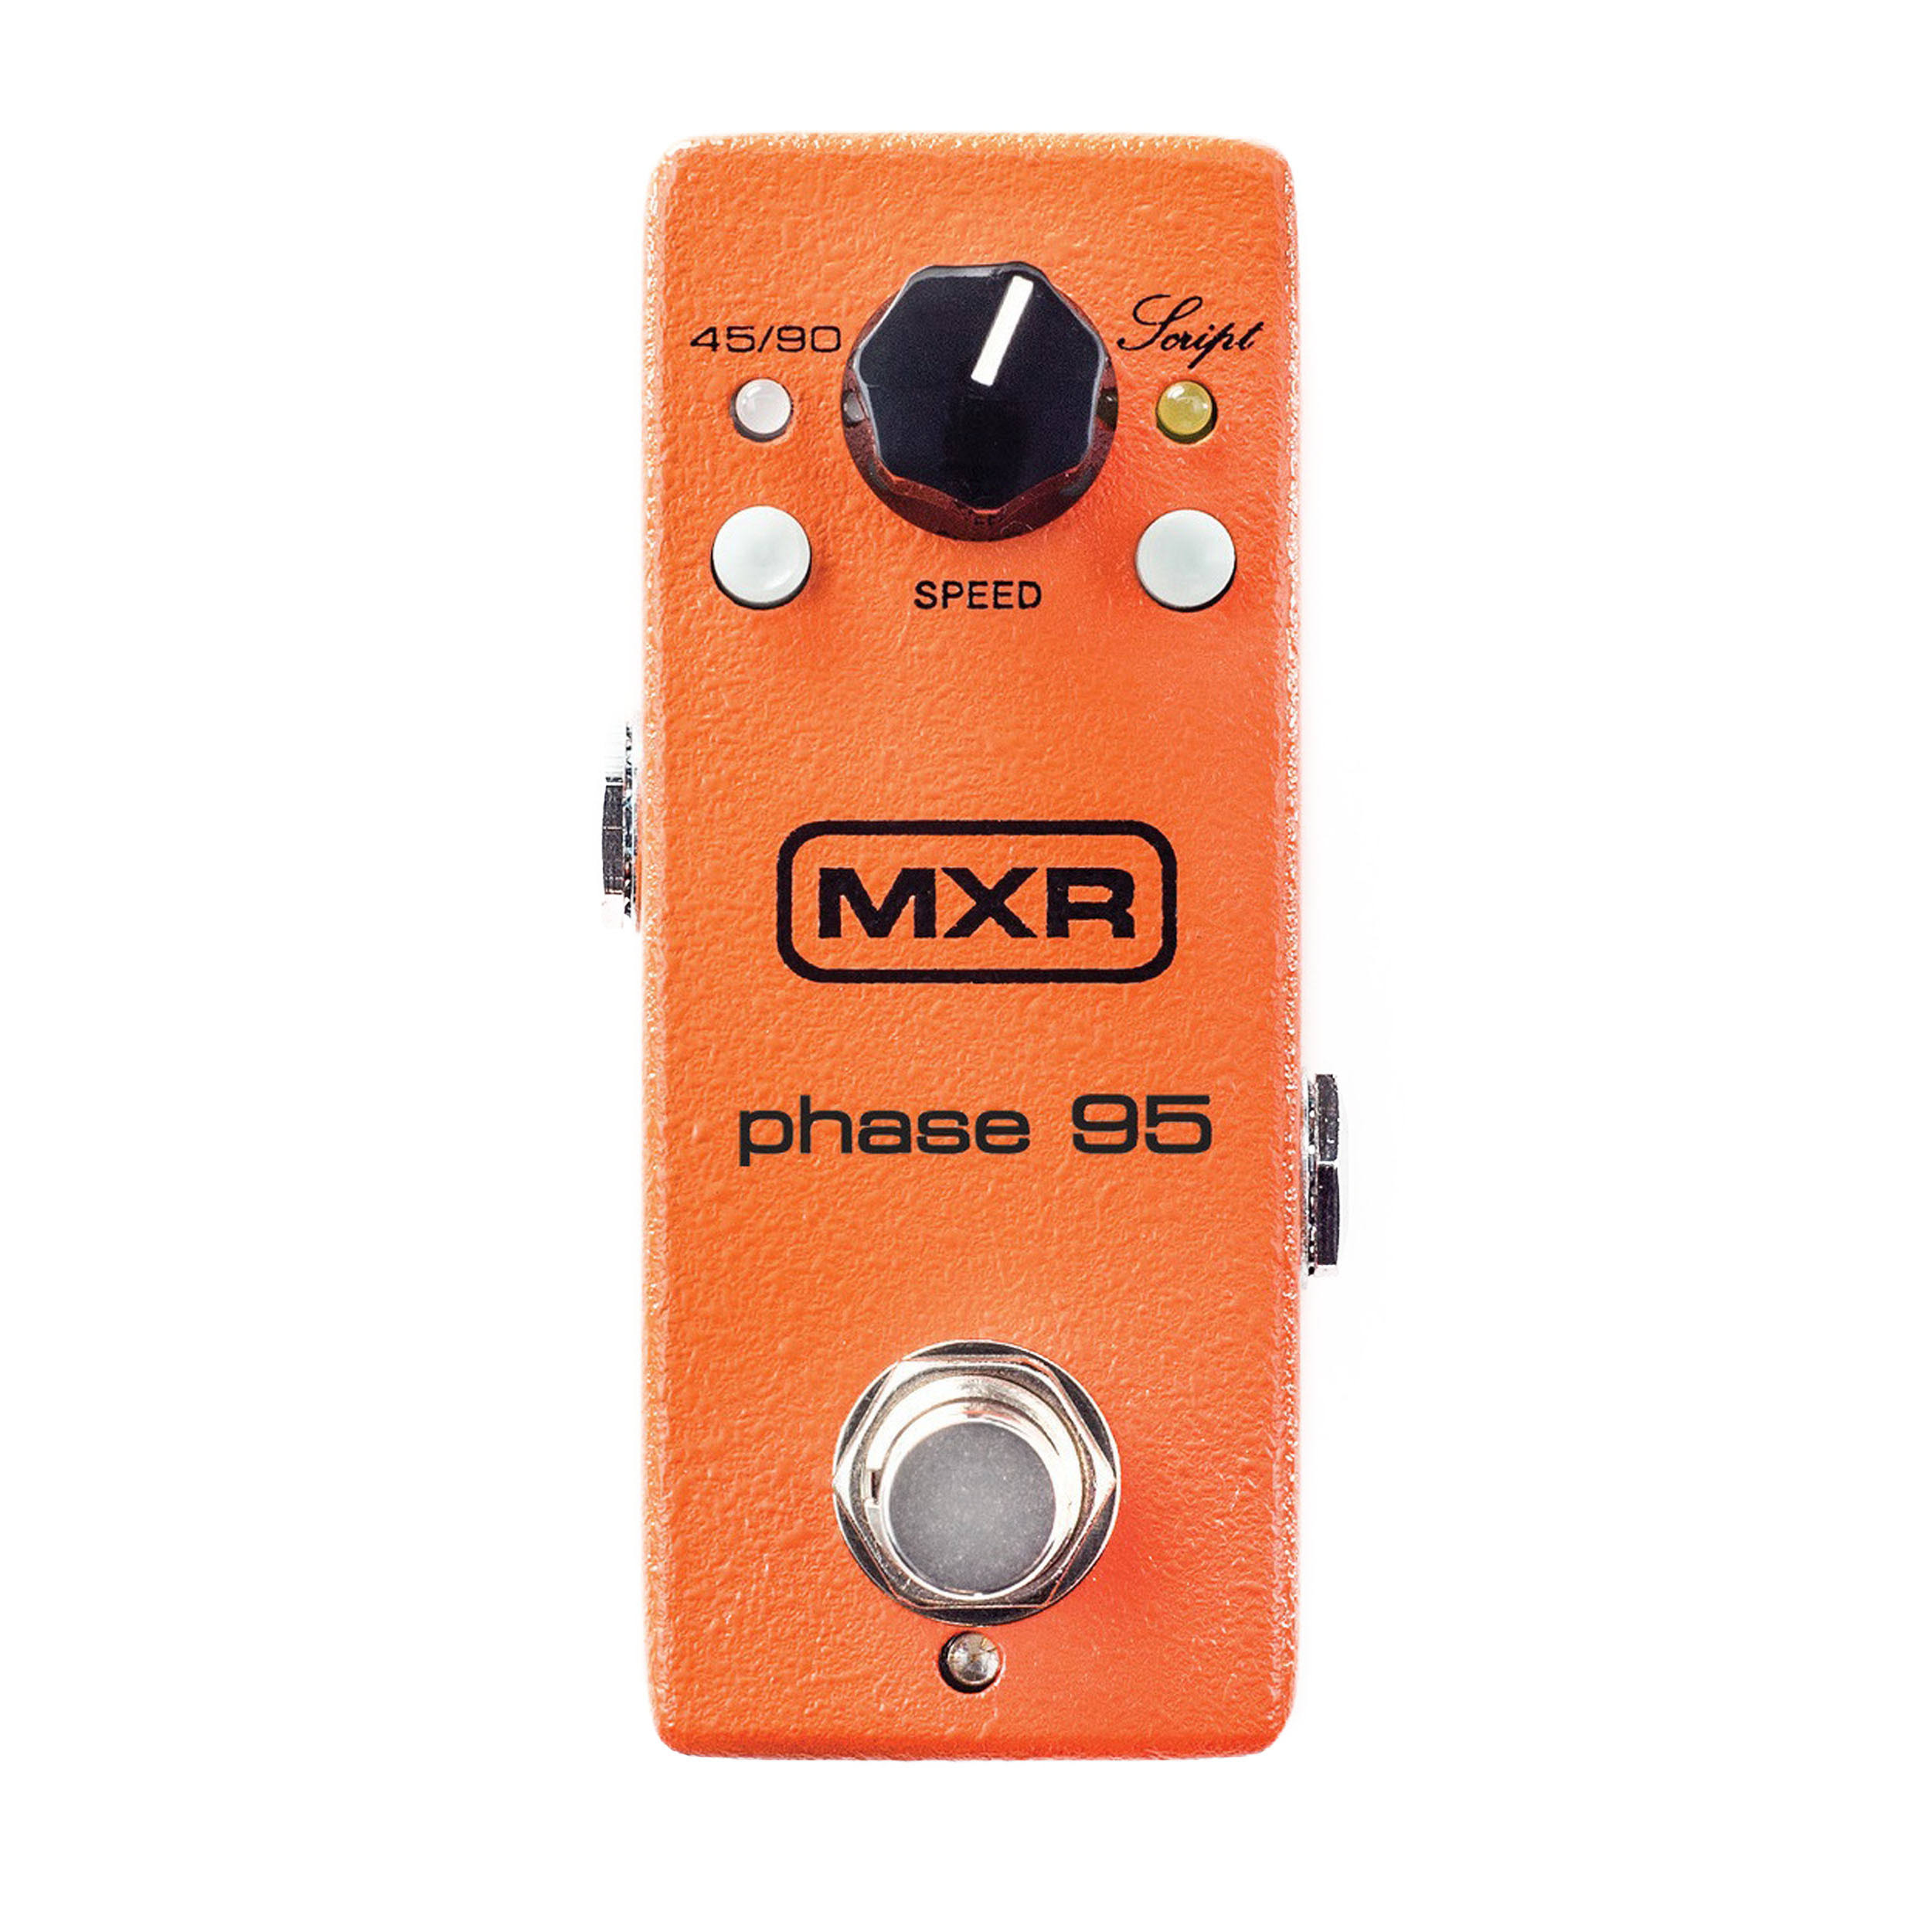 MXR M290 Phase 95 Phaser Guitar Effects Pedal